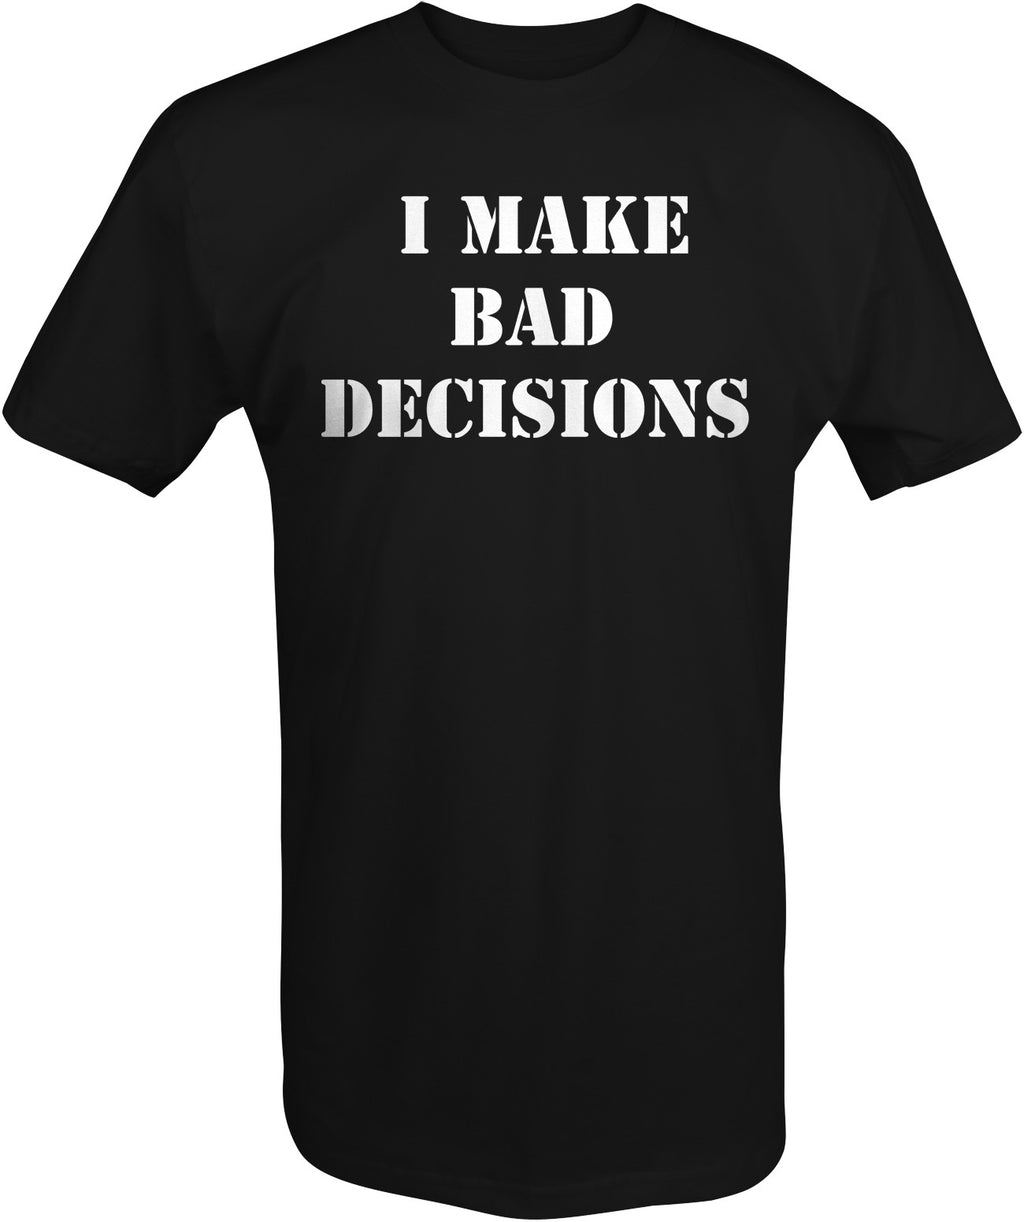 Hood Rat™ Bad Decisions - Bolts & Hose